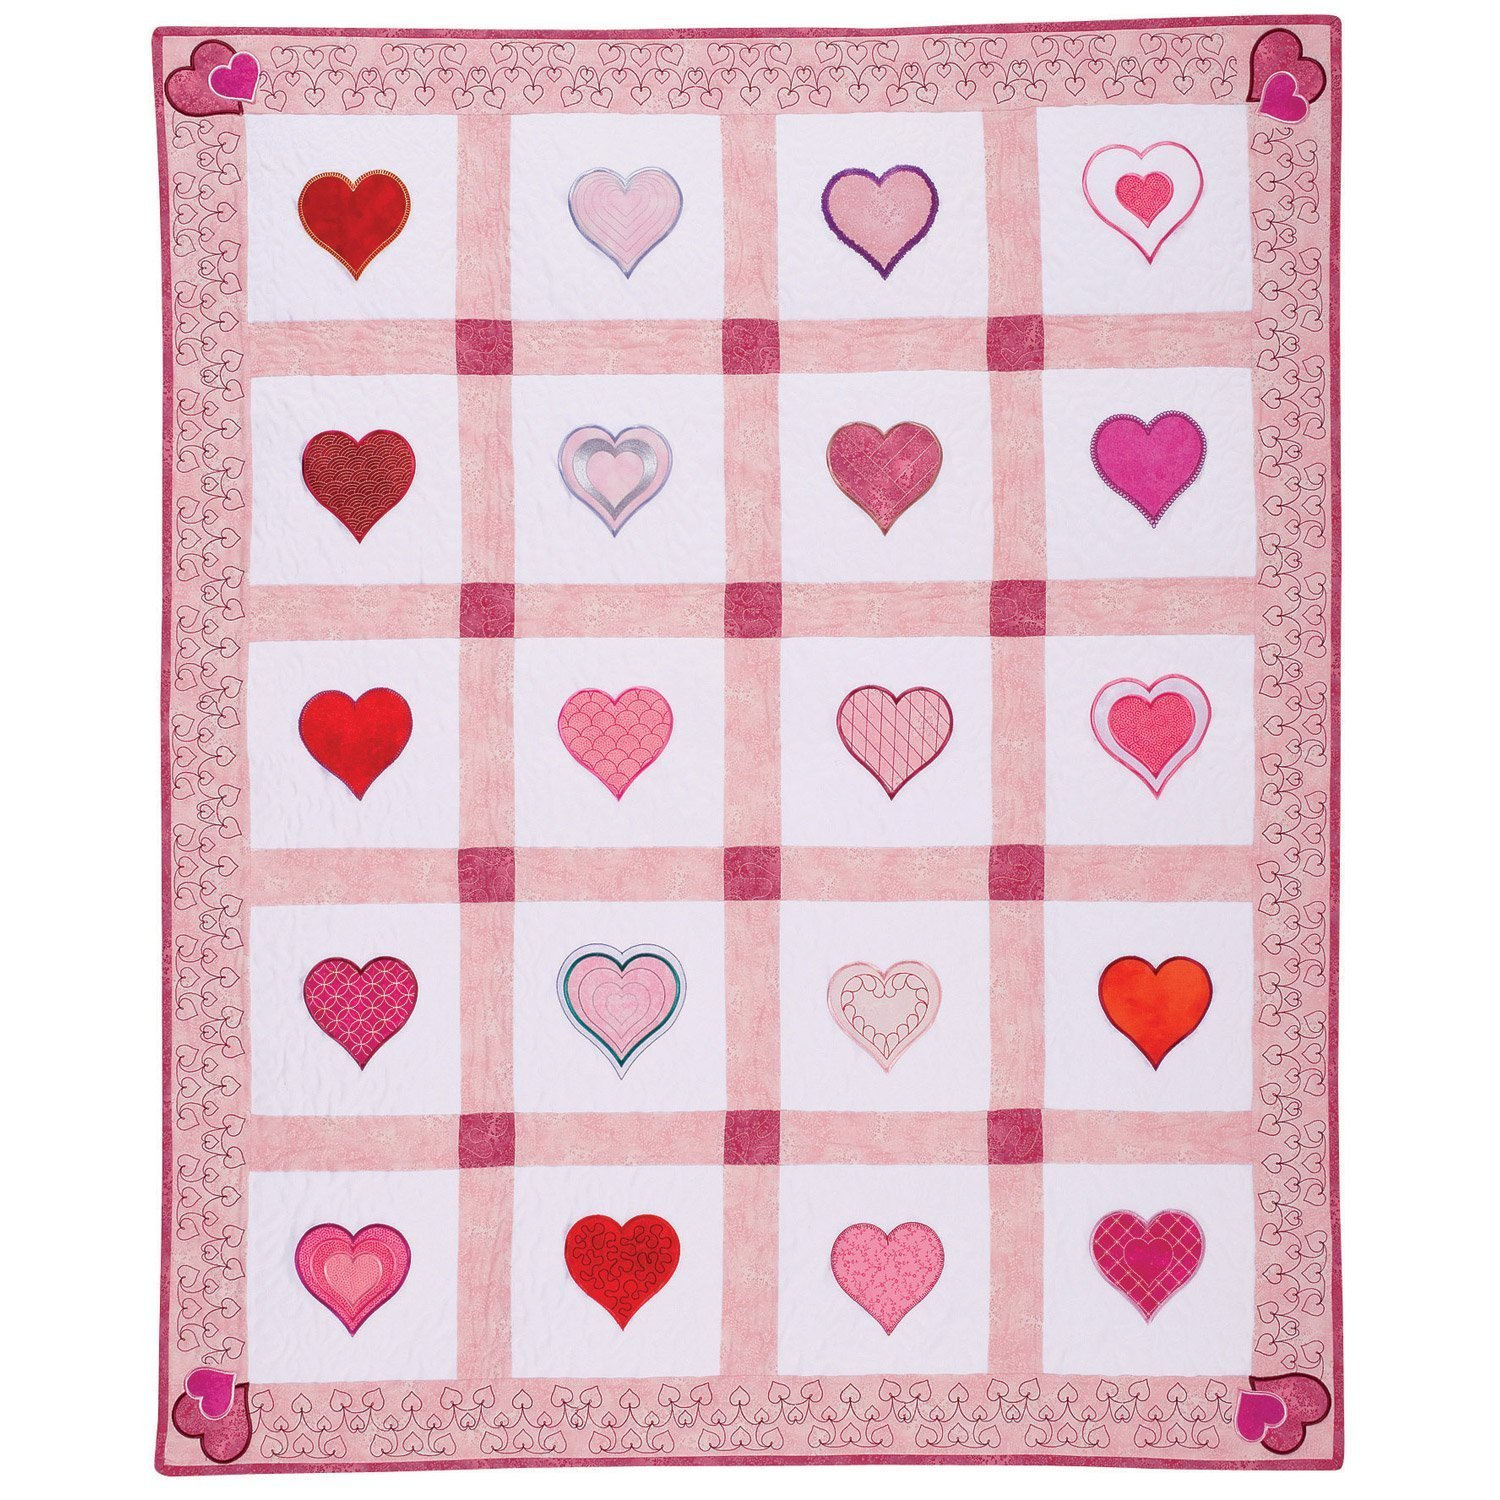 FREE Download GO! Heart to Heart Quilt Pattern